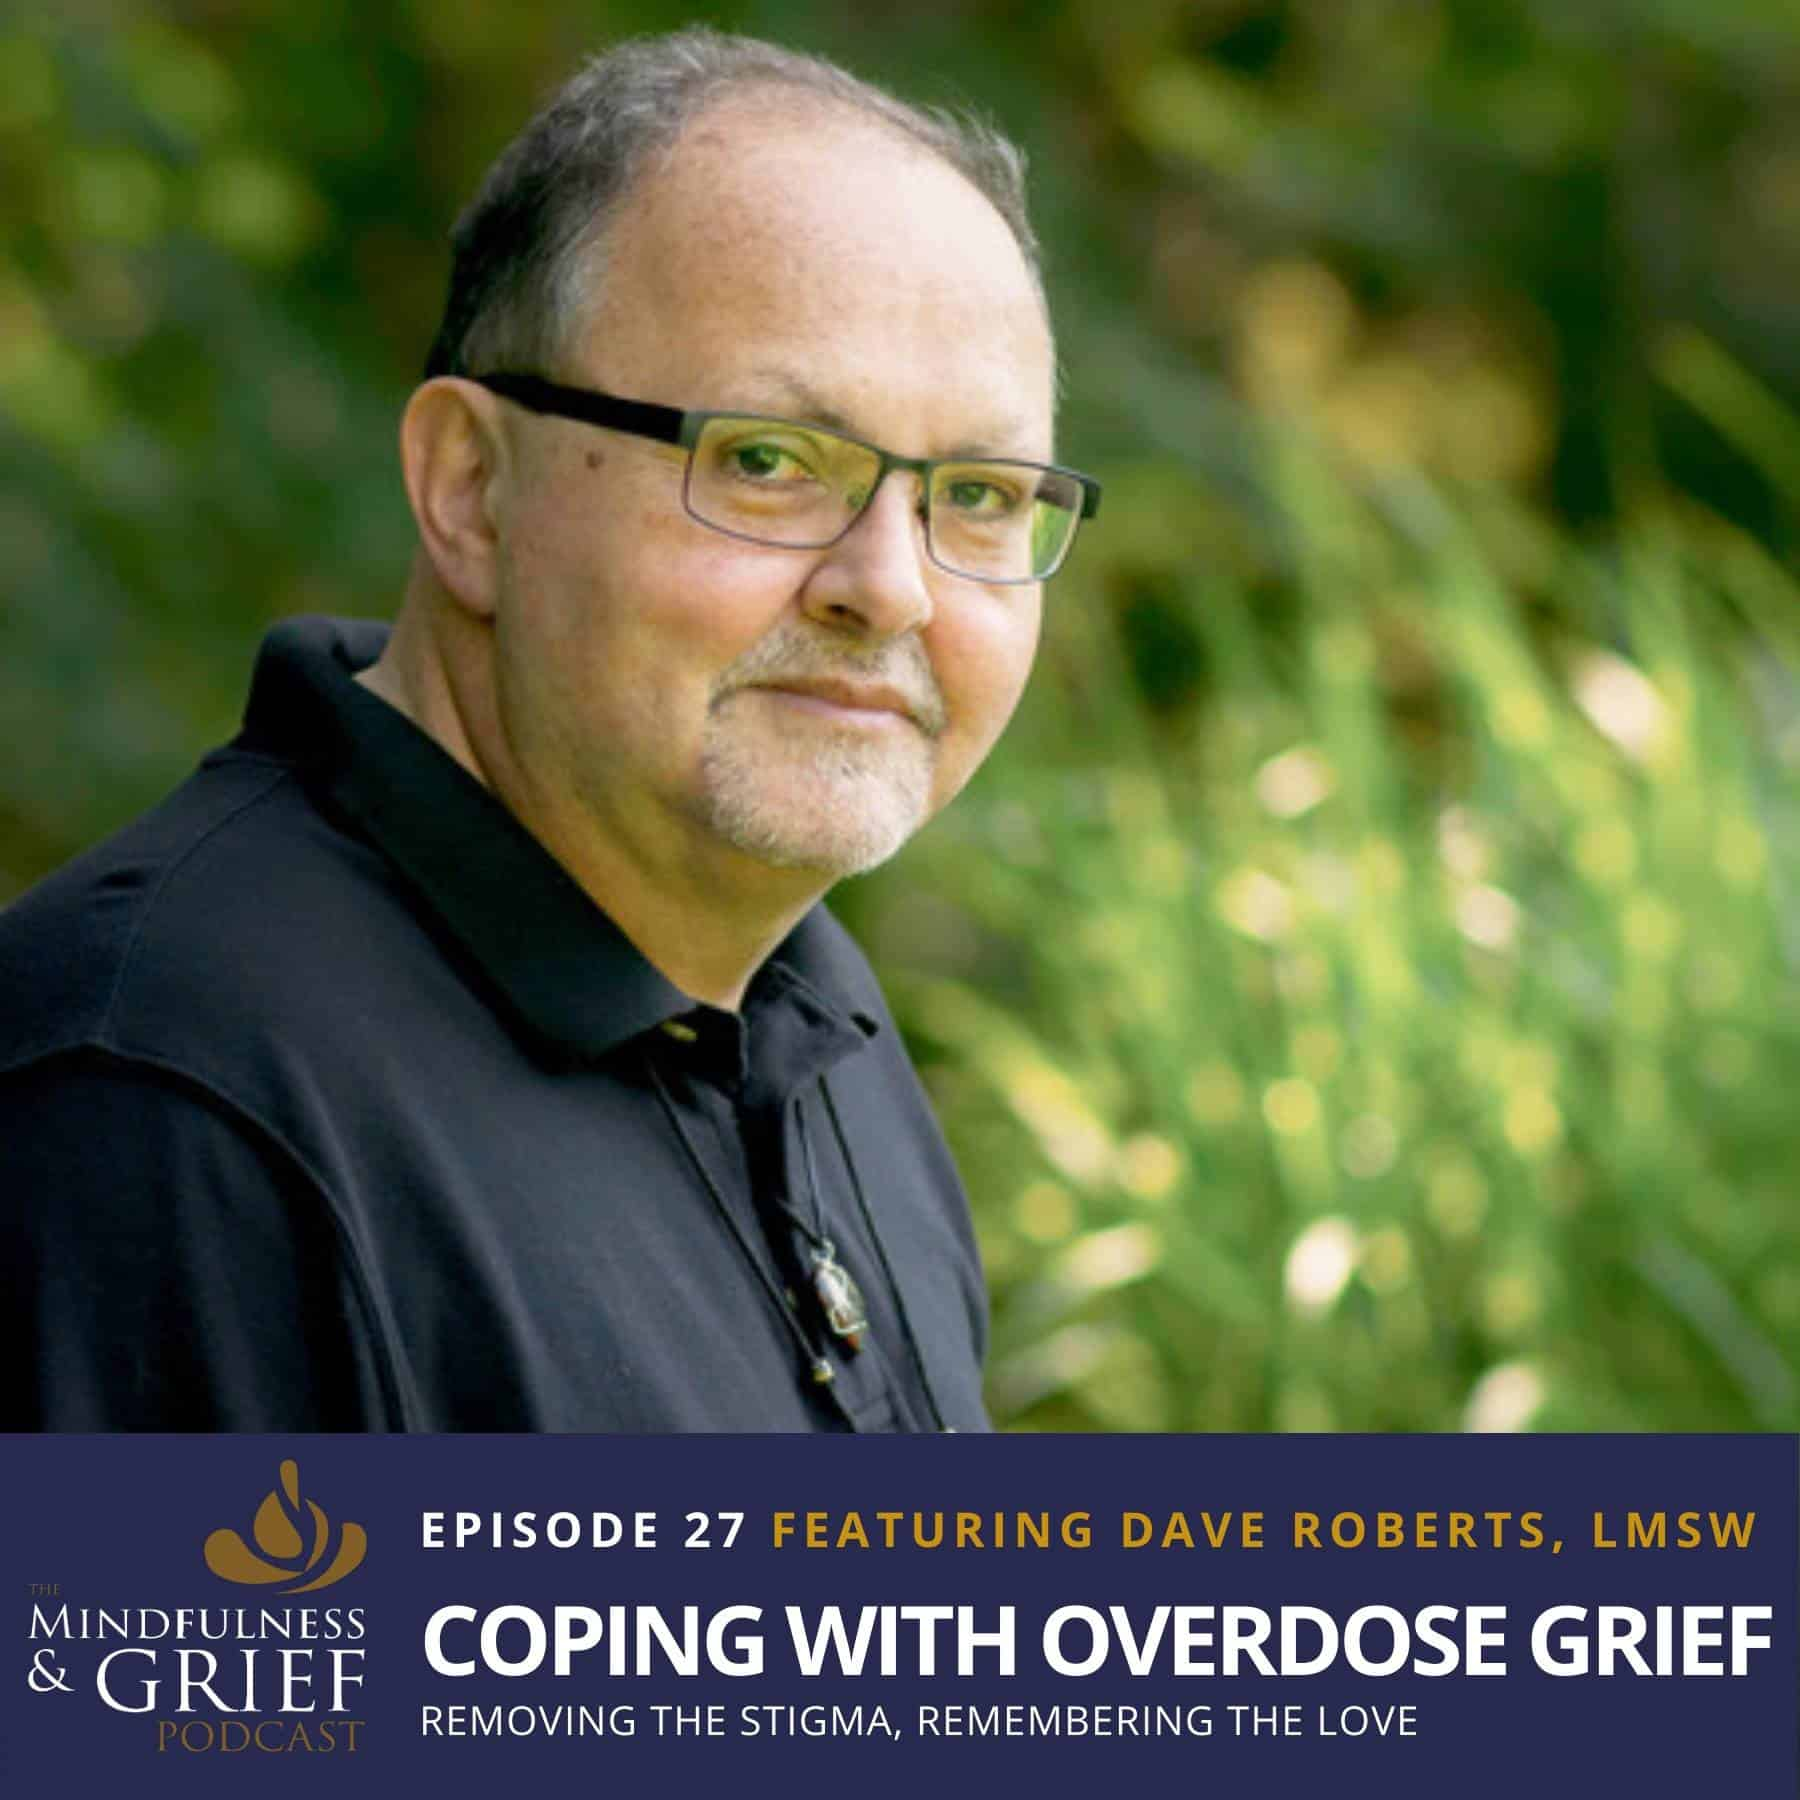 coping with overdose grief podcast